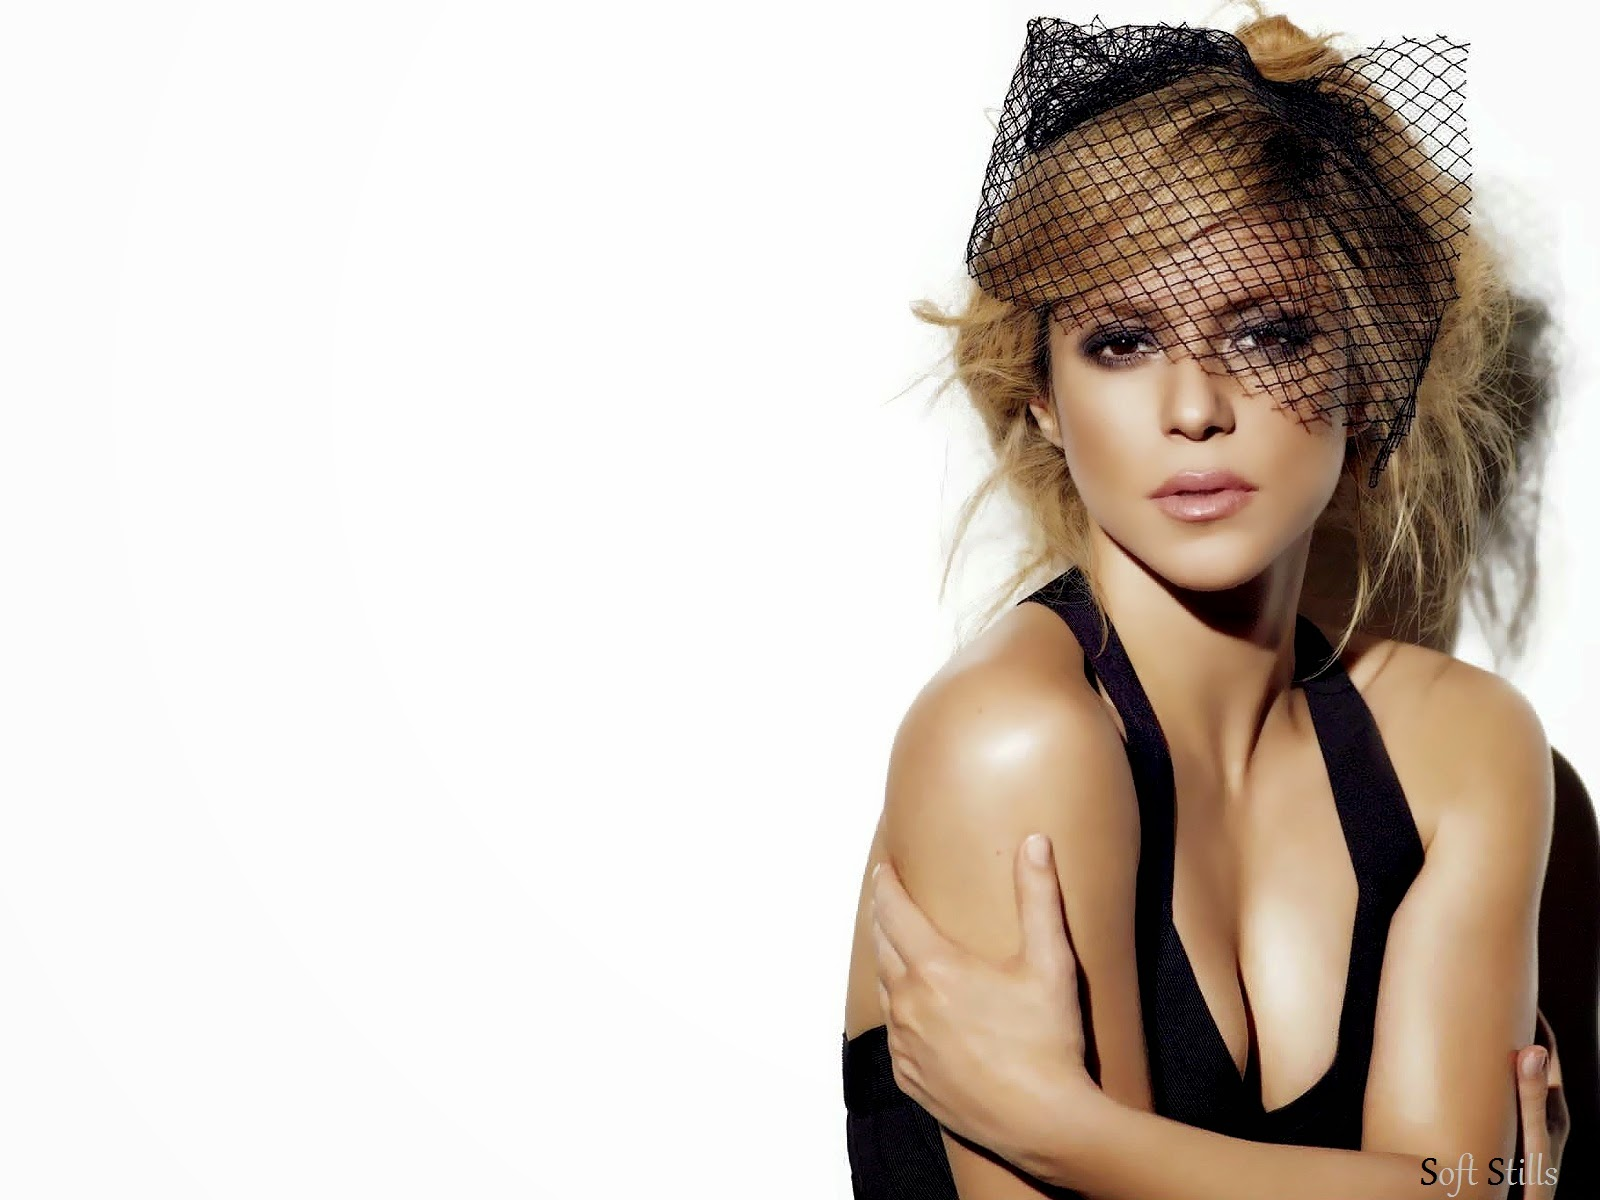 http://www.softstills.com/2014/11/shakira-isabel-mebarak-hd-wallpapers.html